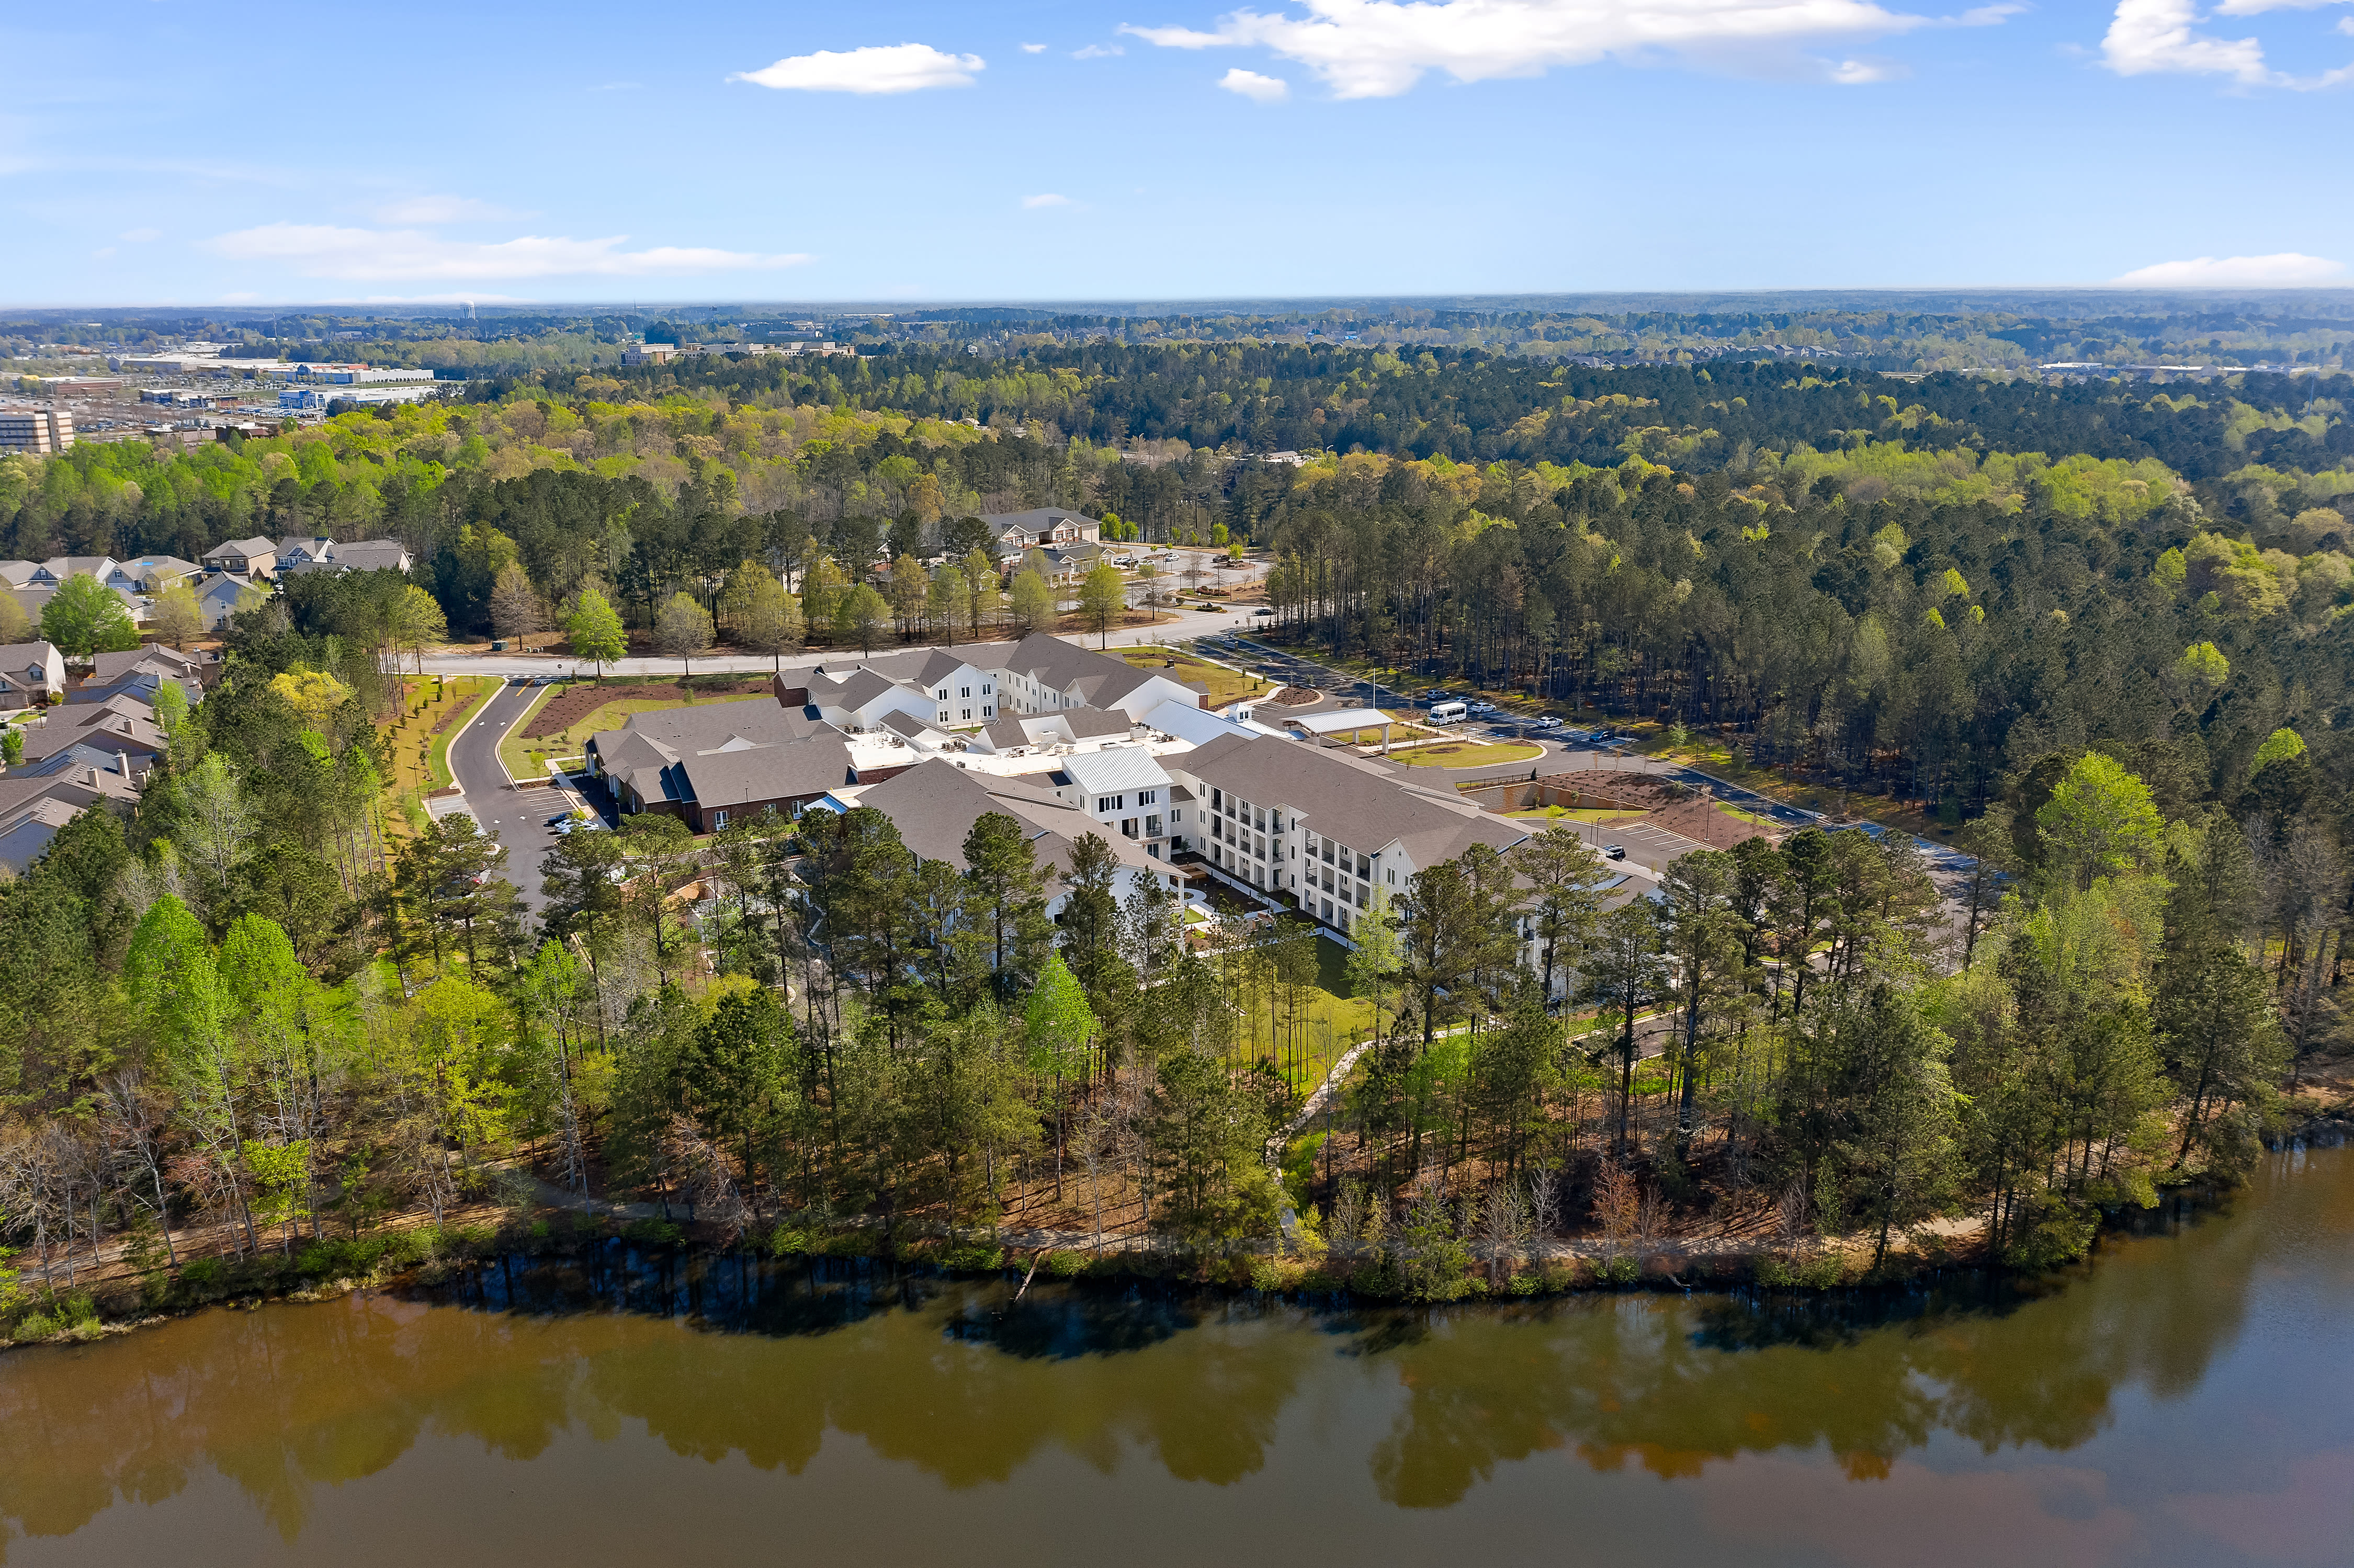 Aerial scenic view of The Claiborne at Newnan Lakes in Newnan, GA